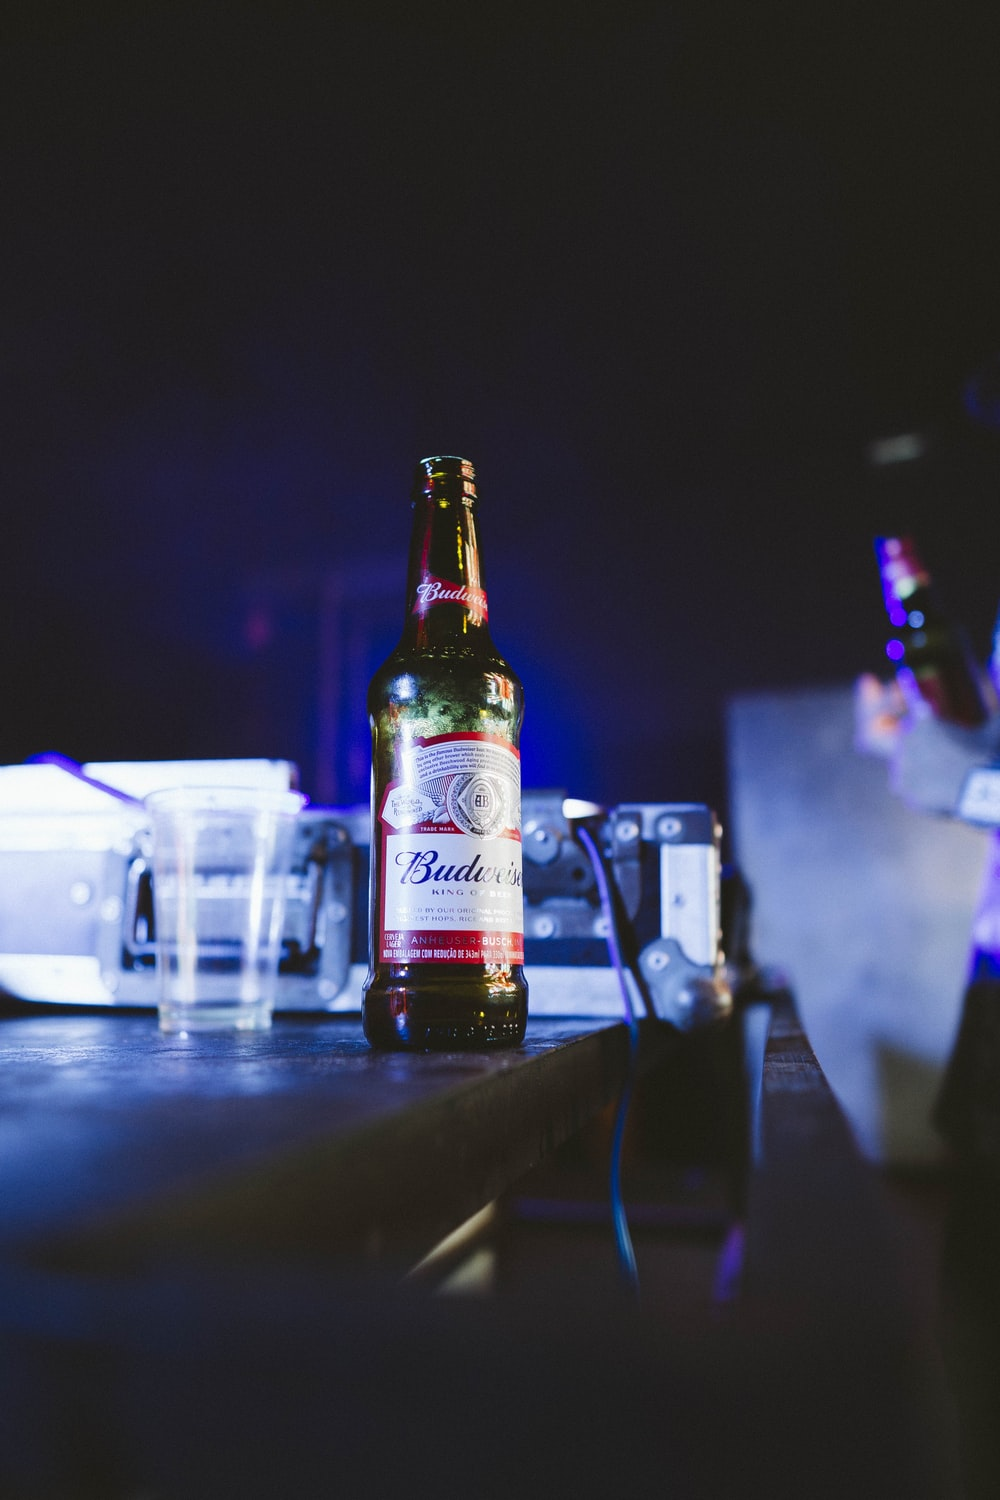 Budweiser bottle on brown wooden table